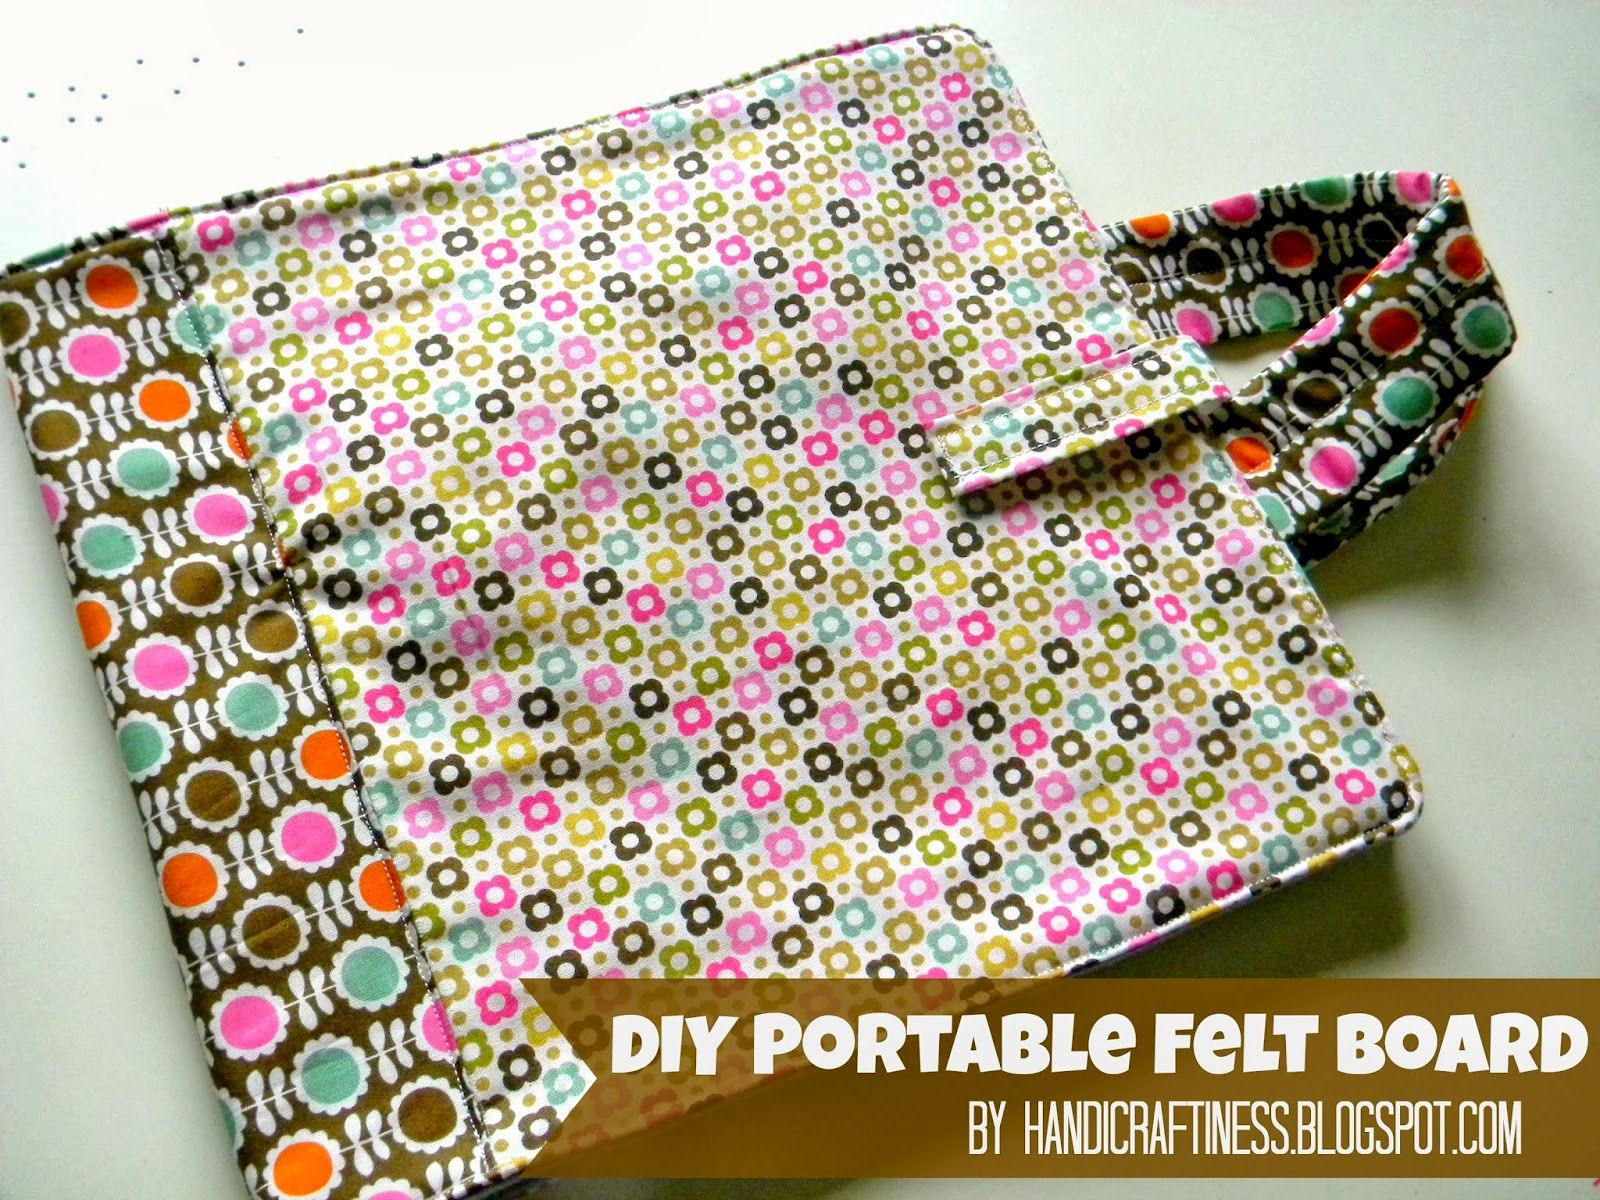 Handicraftiness: Free Tutorial and Pattern for a Portable Felt Board